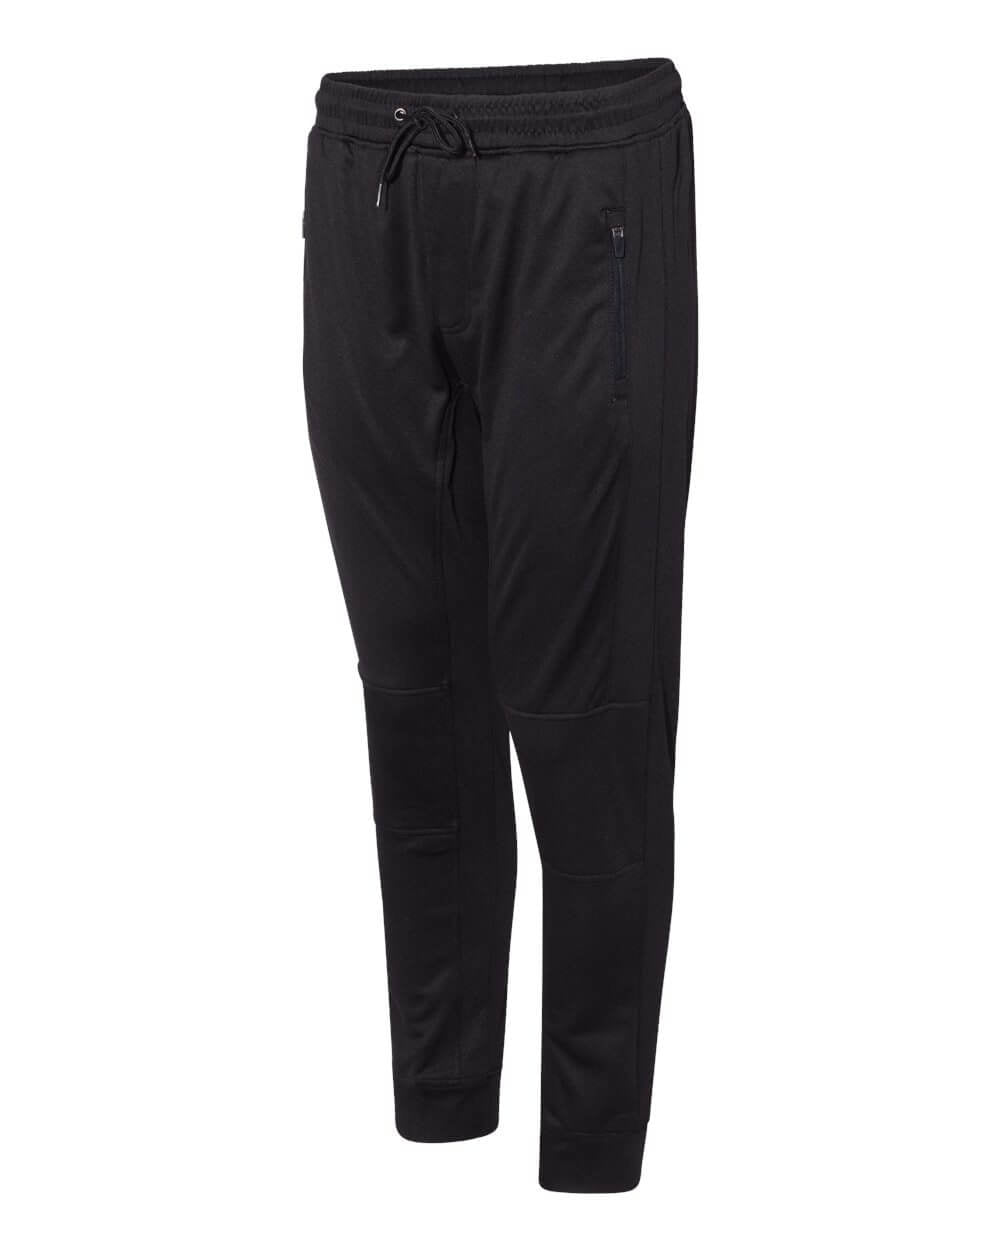 Burnside Jogger Pant - Black